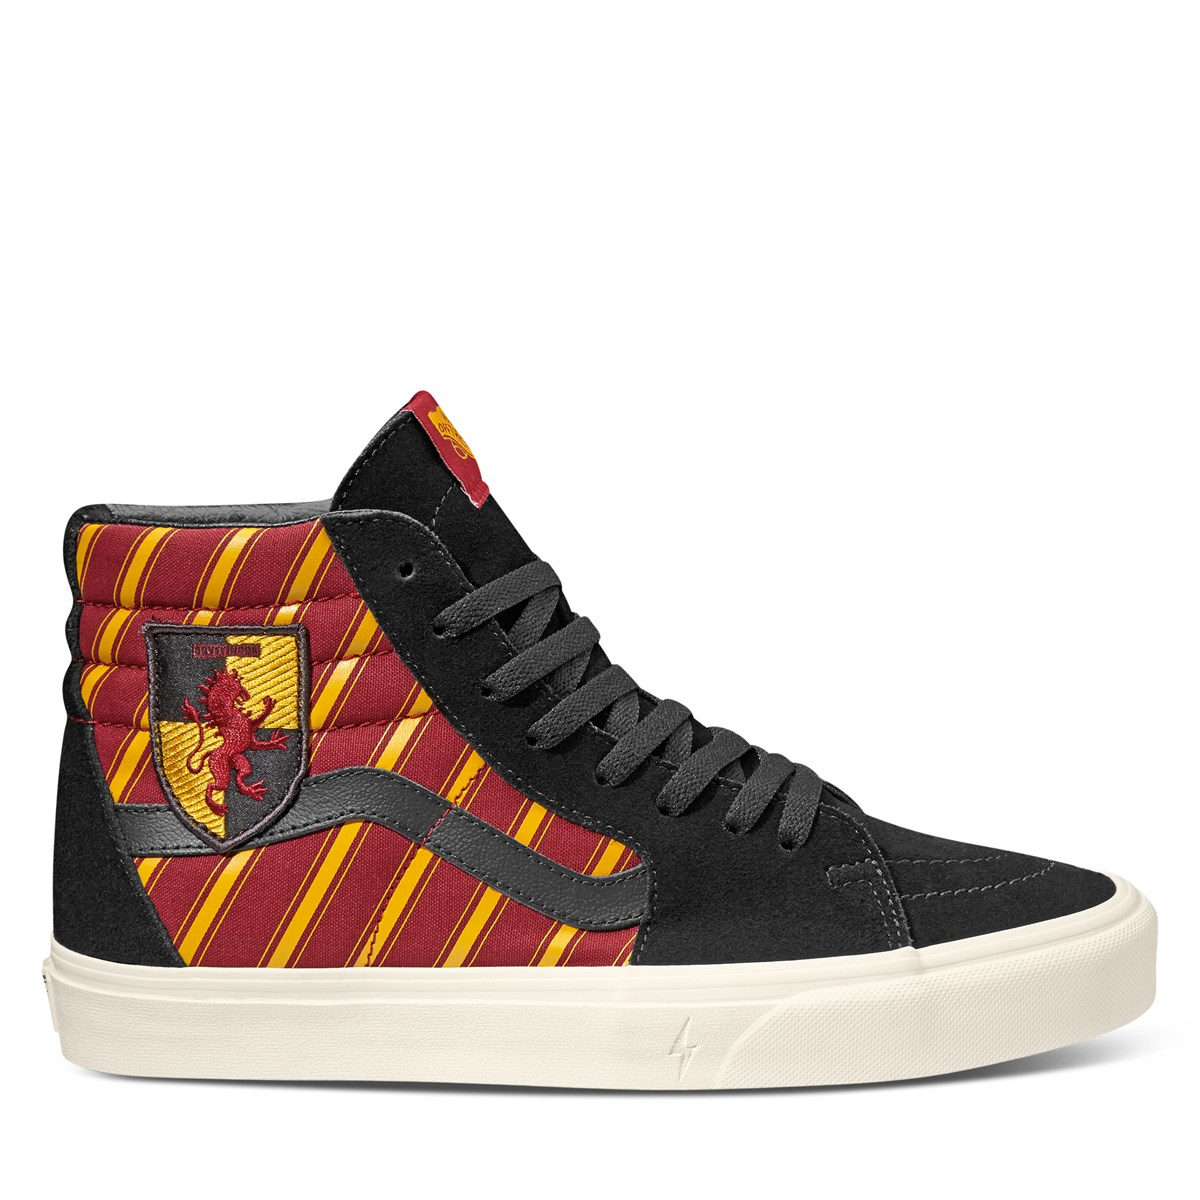 Sk8-Hi Harry Potter Gryffindor Sneakers